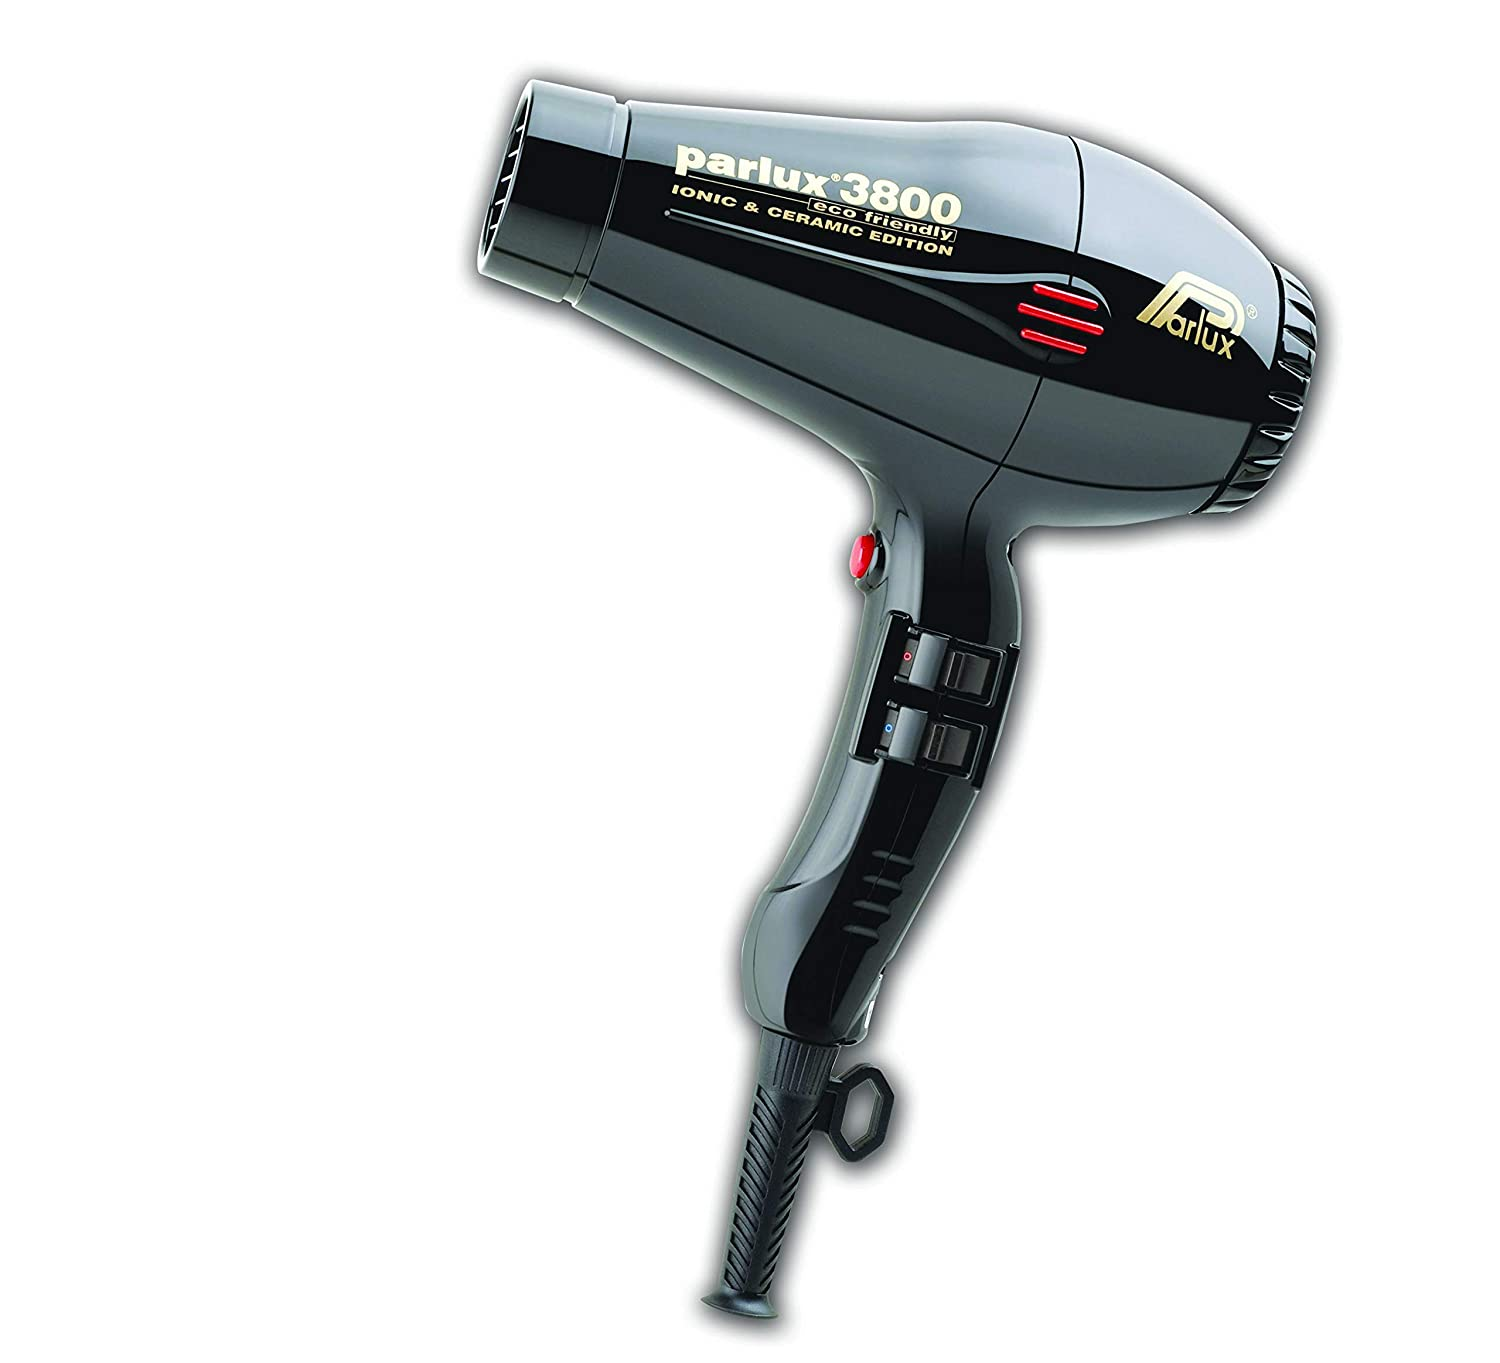 Parlux Professional hair dryer - best hair dryer for damaged hair